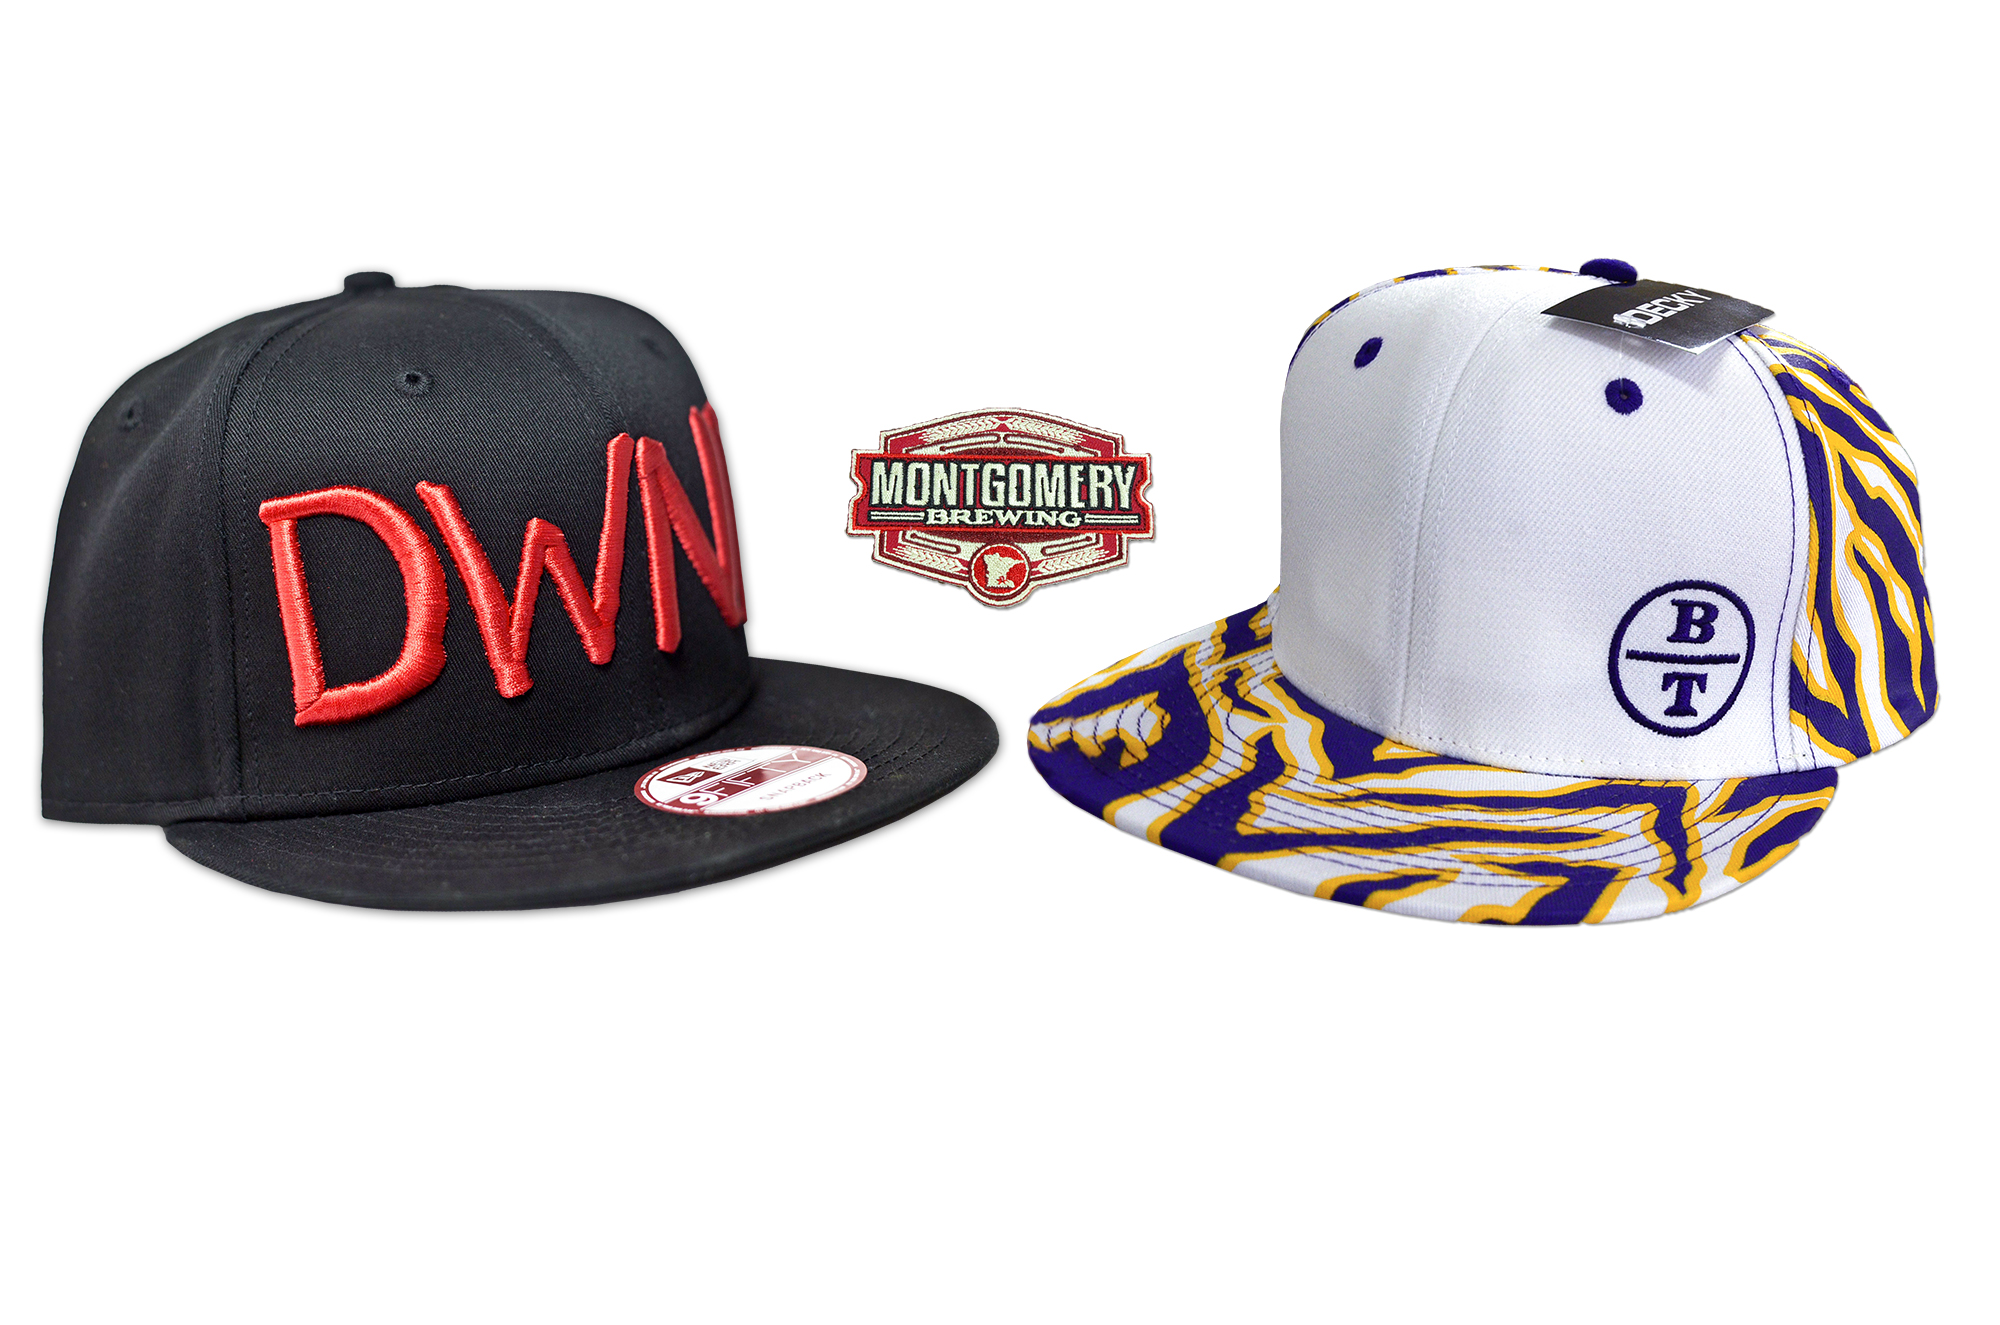 Custom Embroidery - For Your Business, Team, or Event.Hats, Jackets, Work Shirts, Patches and More.Professional Quality Embroidery.